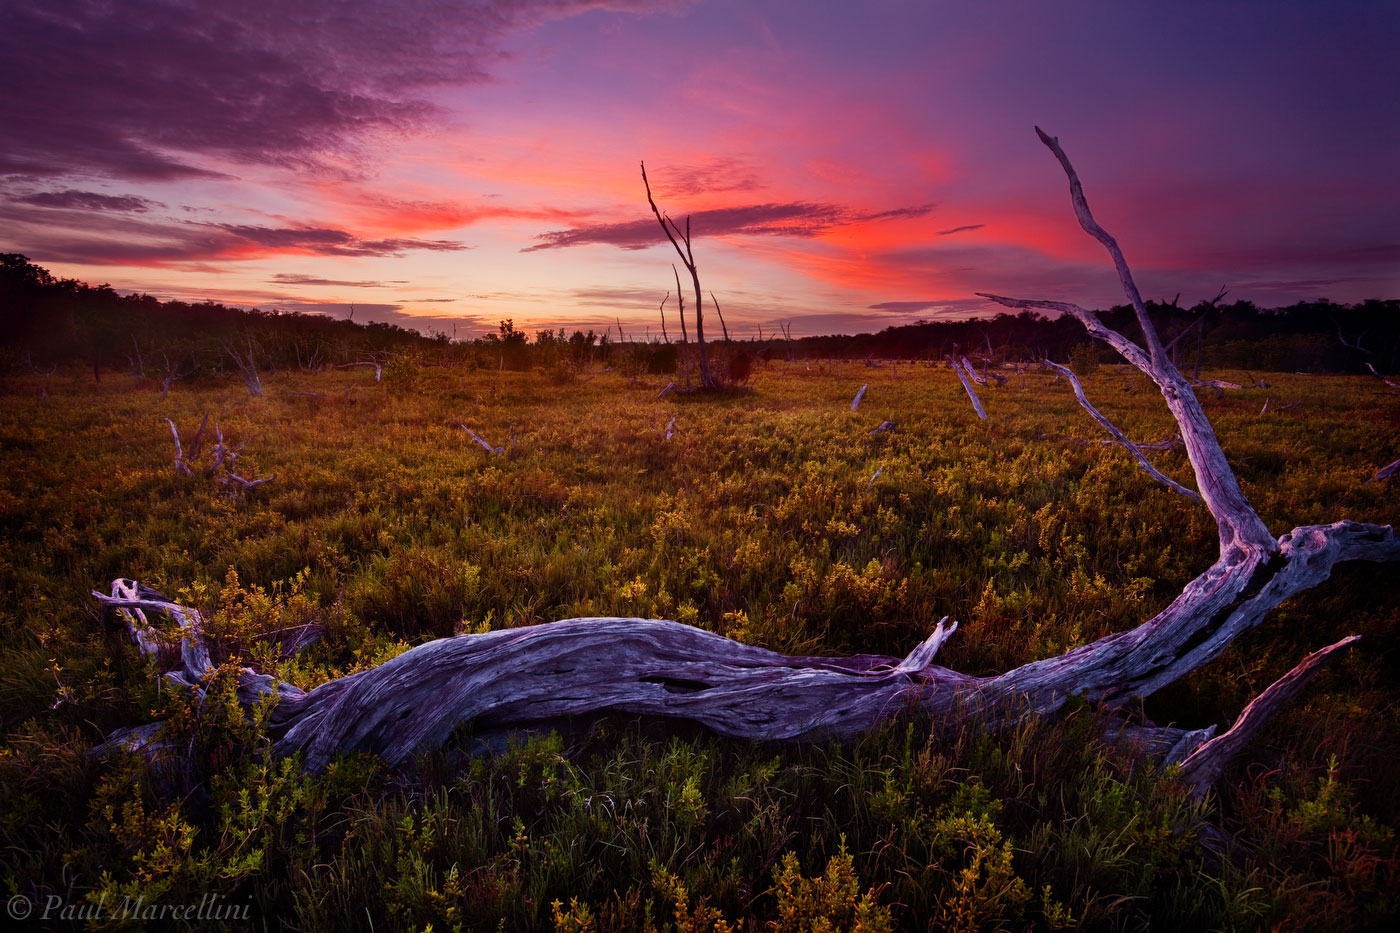 salt marsh, everglades, florida, nature, photography, florida national parks, photo